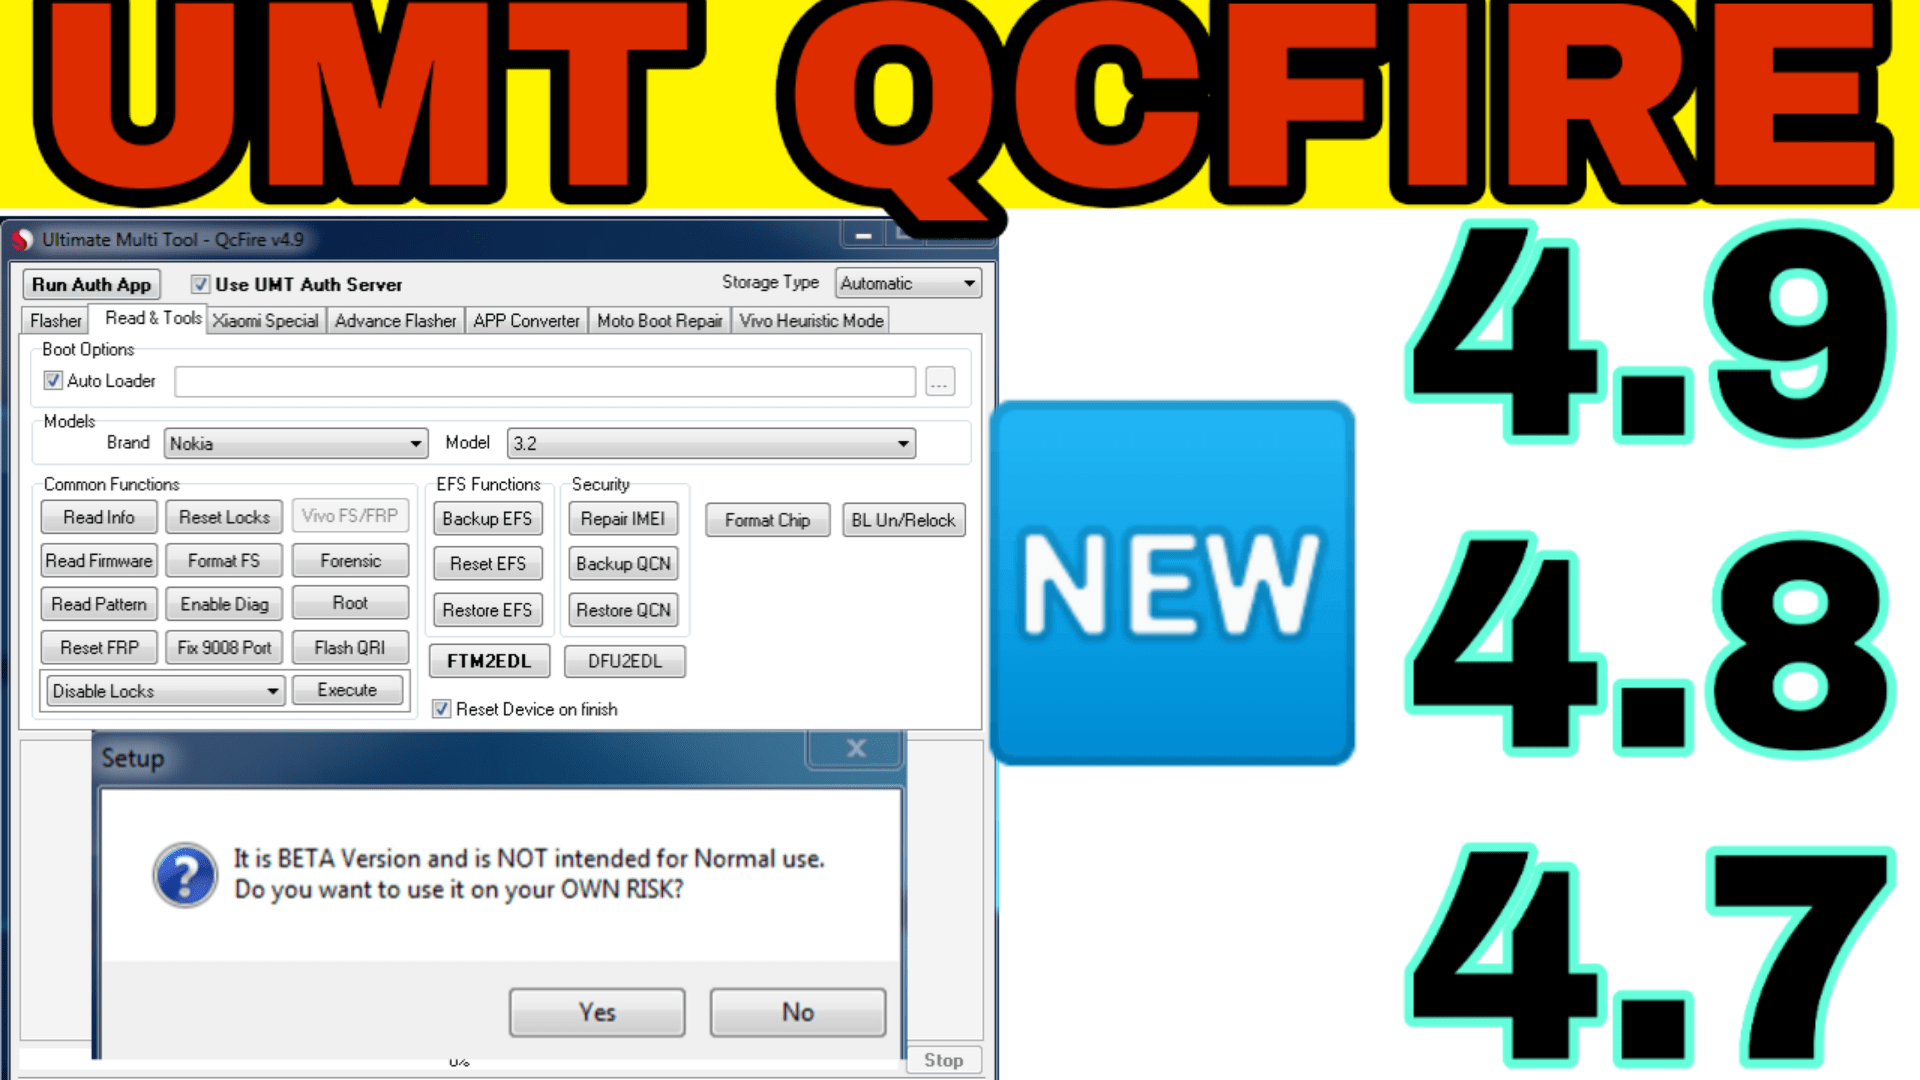 Ultimate-Multi-Tool-Qcfire-v4.9-Download-Added-Run-Auth-Server